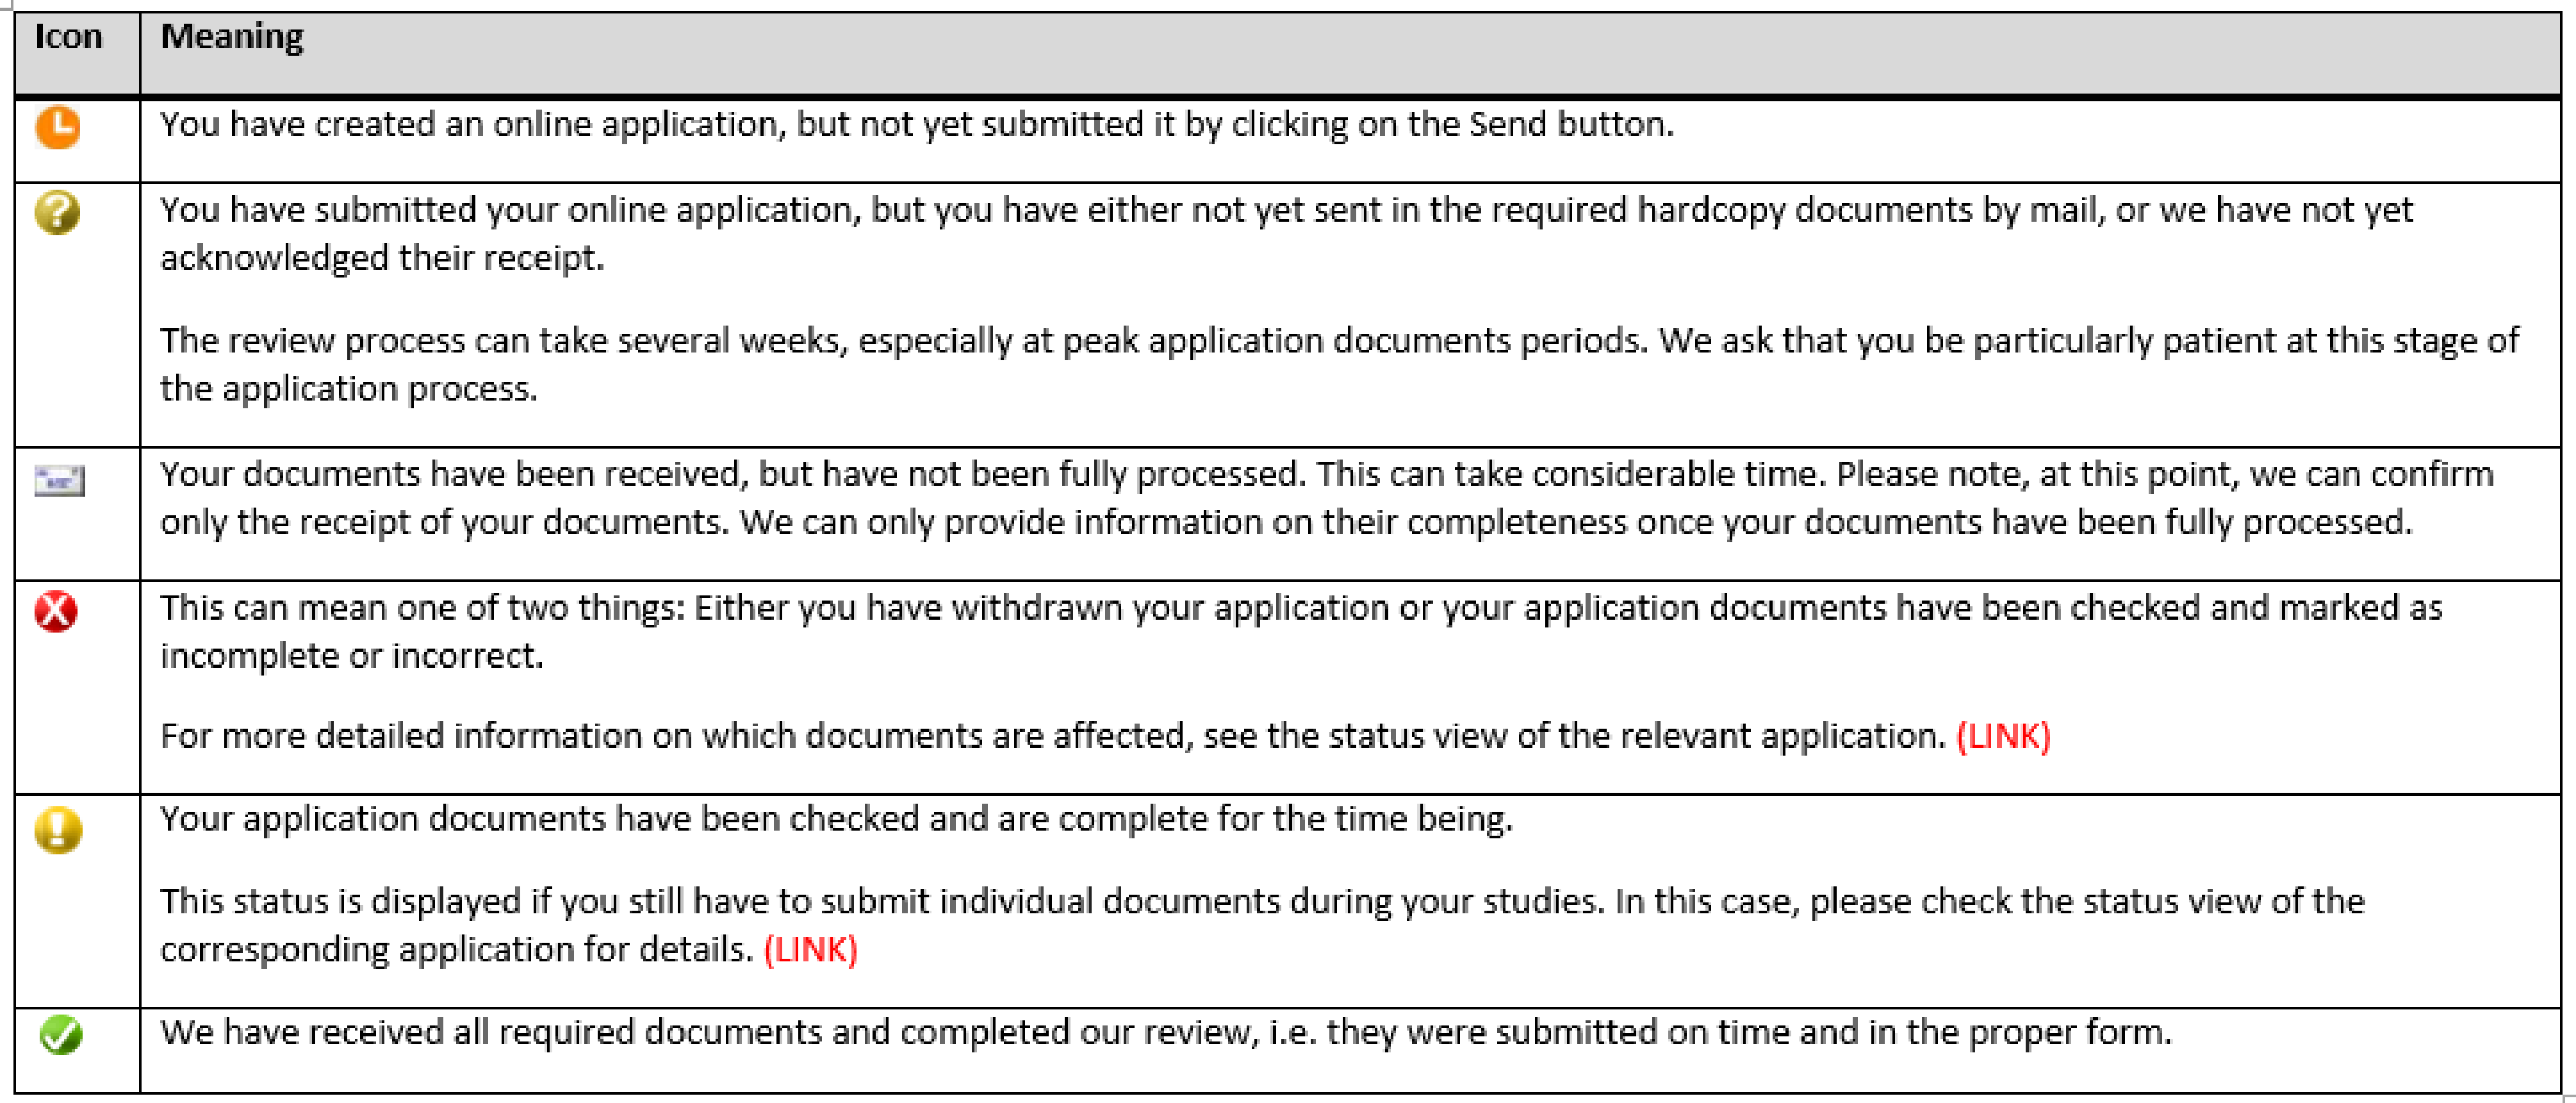 Clock: Application not submitted. Yellow query: Application not complete or not reviewed. Envelope: Documents received but not yet checked. Red X: application withdrawn or at least one document not ok. Yellow exclamation mark: application temporarily complete. Green check: all documents received and ok.